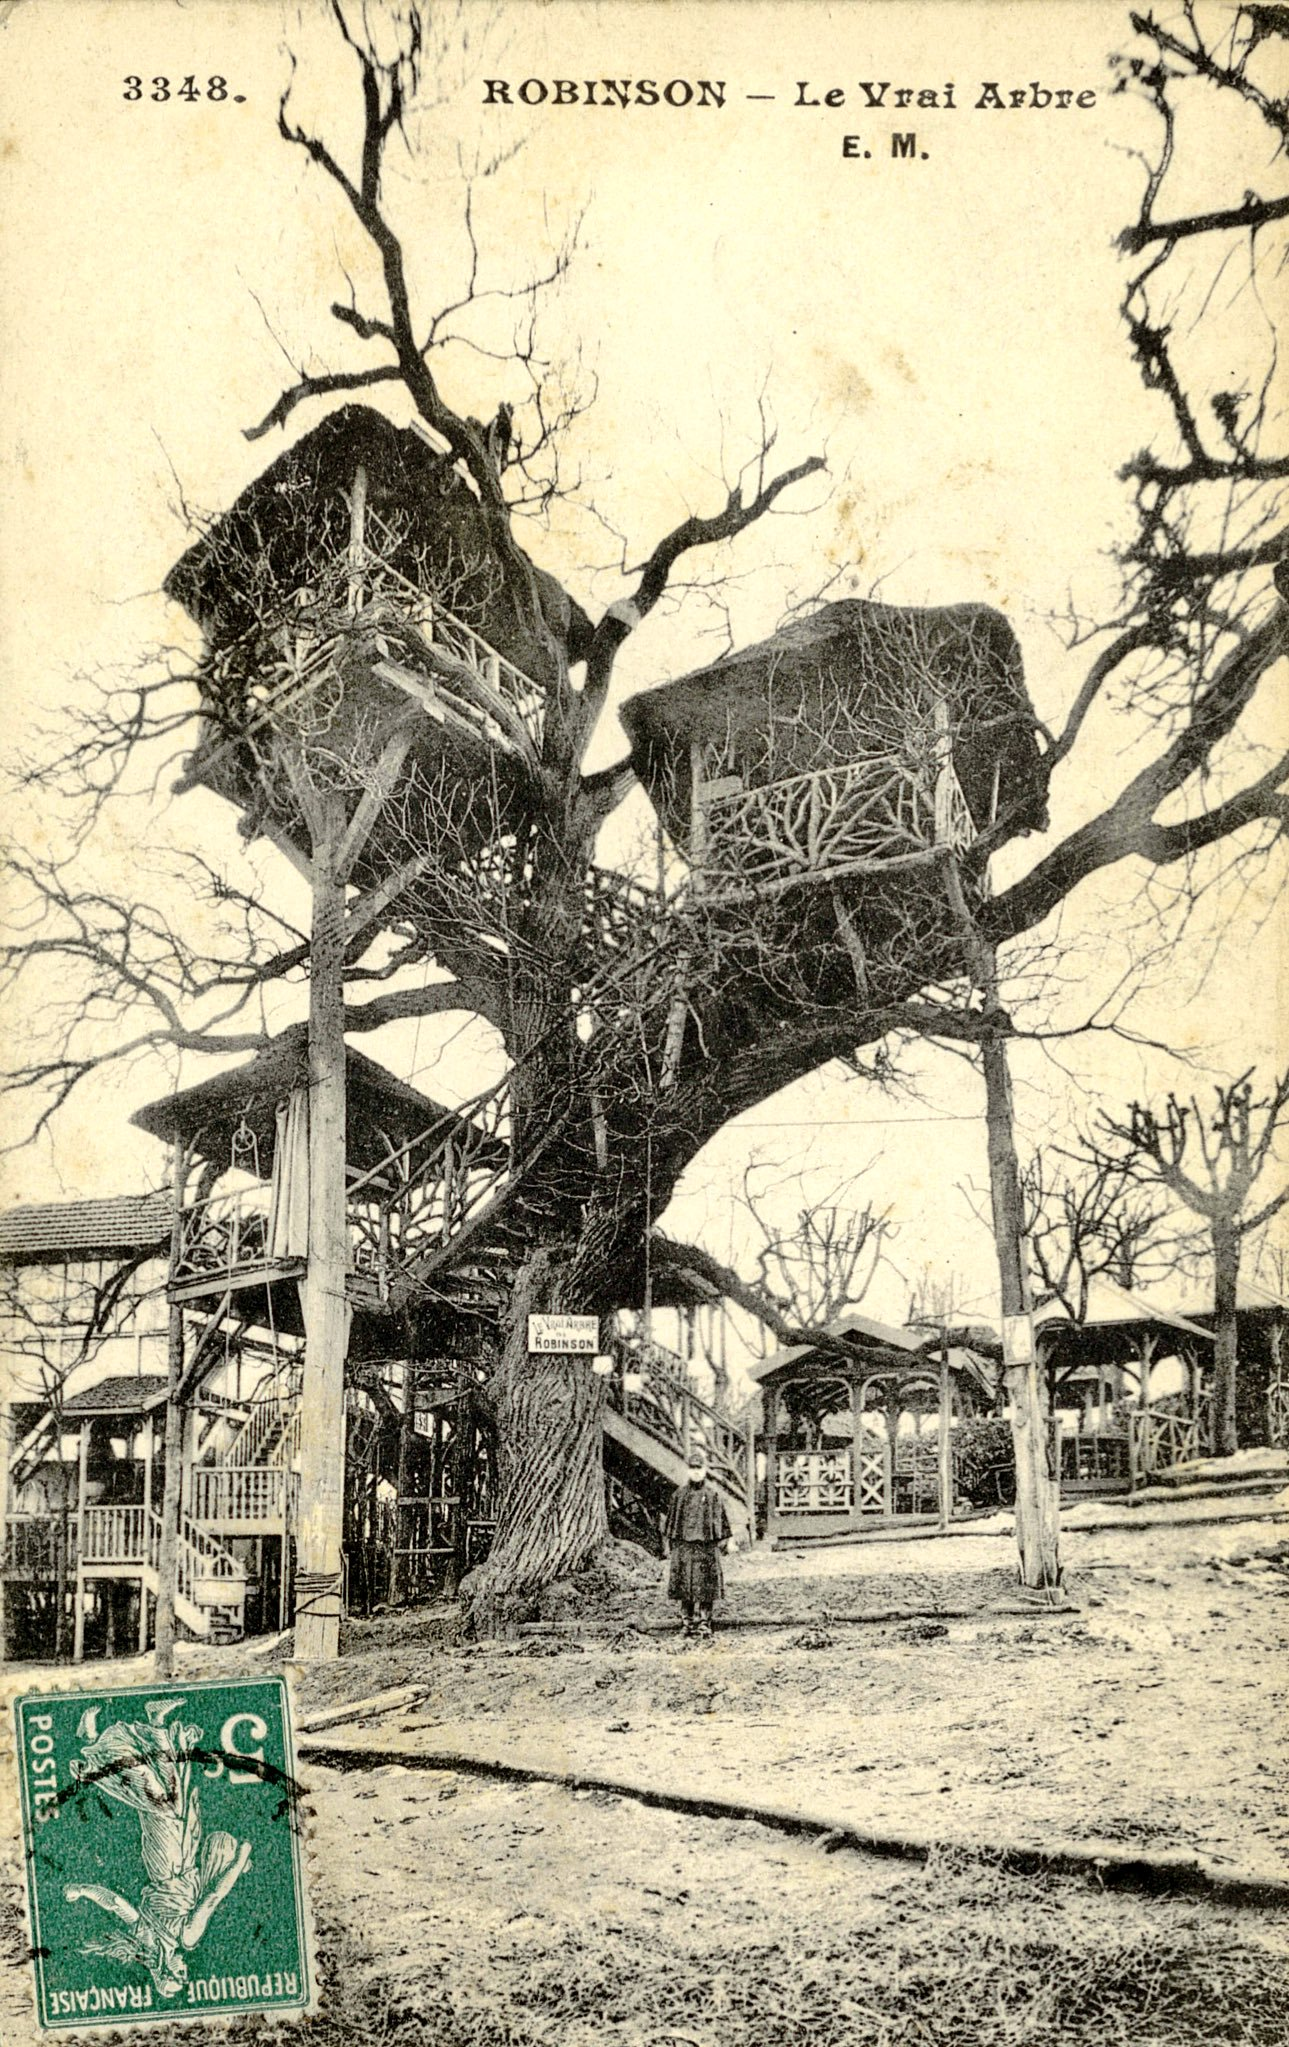 In A French Commune Built An Interconnected Treehouse